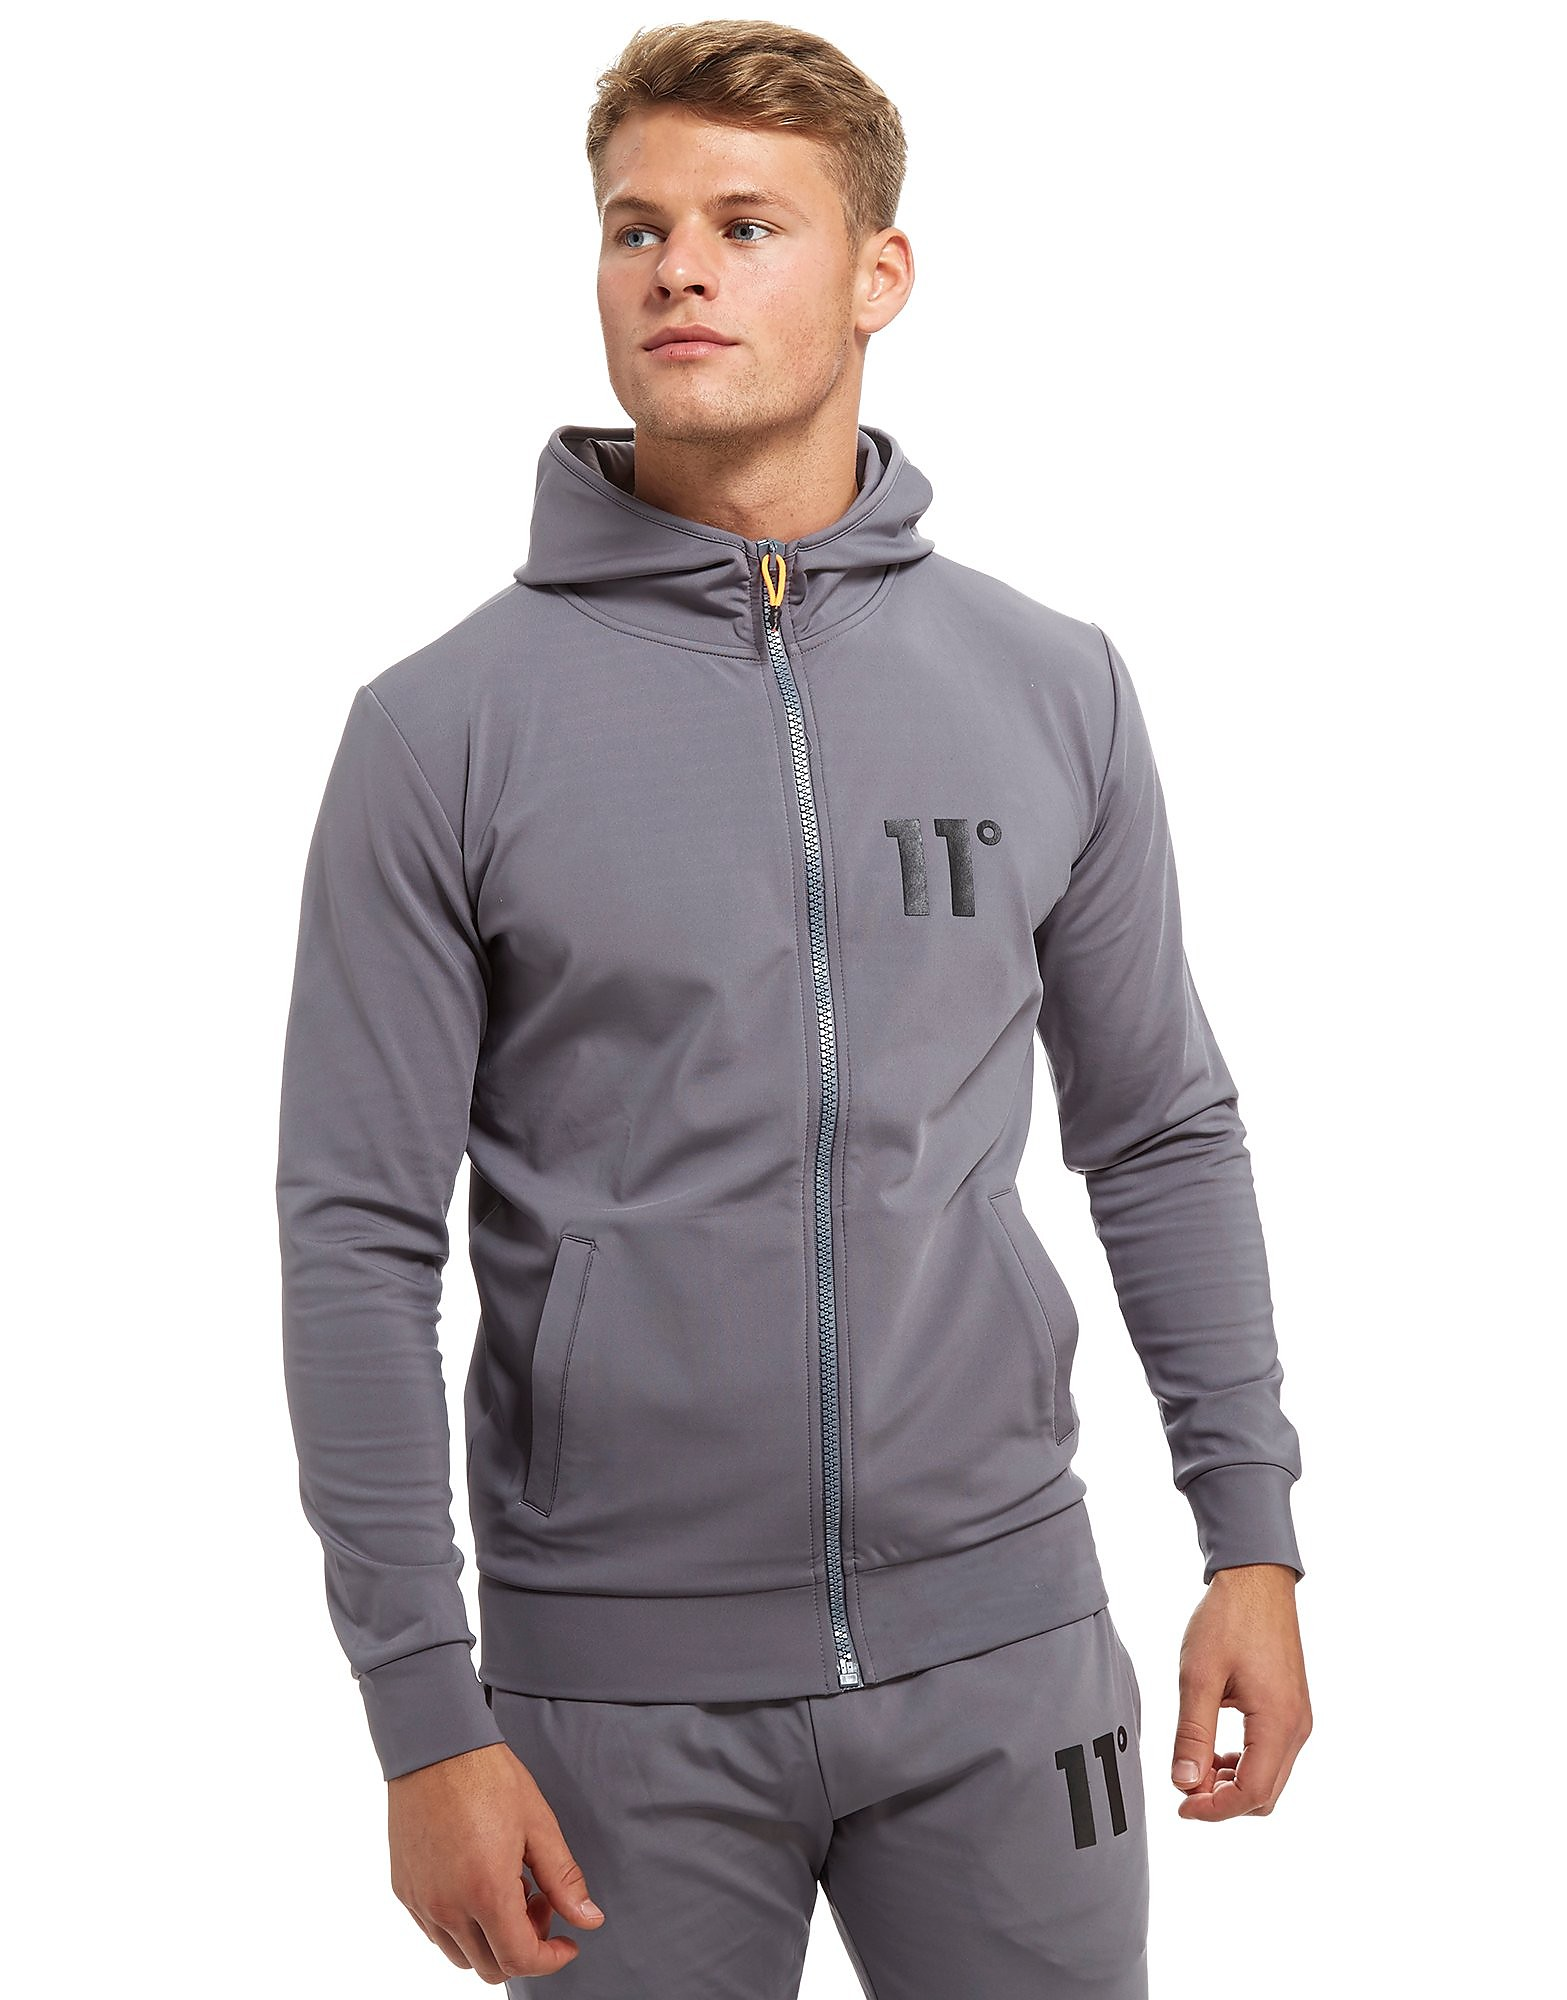 Image de 11 Degrees Sweat Core Poly Zip Homme - Charcoal, Charcoal